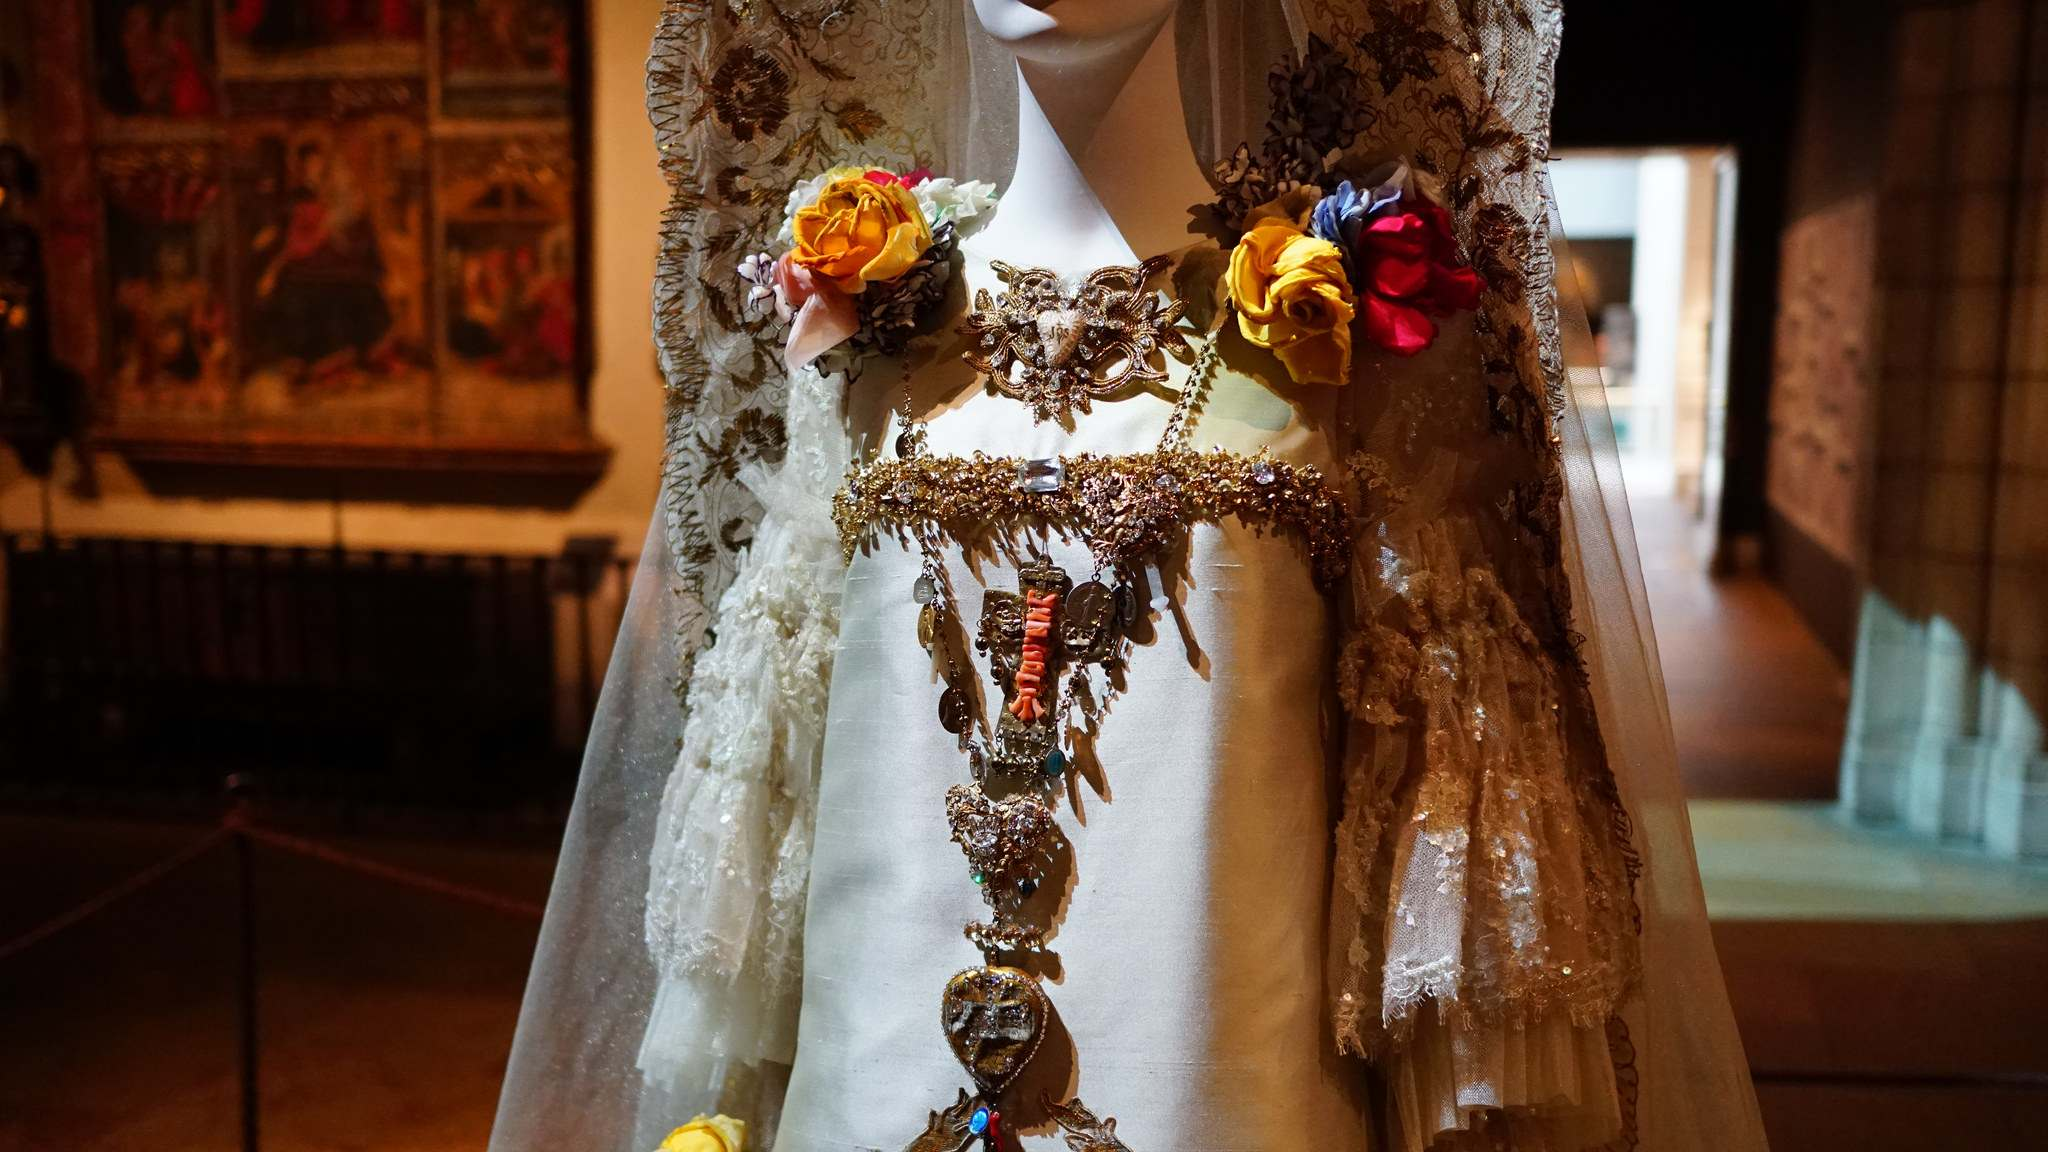 heavenly bodies2 Heavenly Bodies: Fashion and the Catholic Imagination in MET